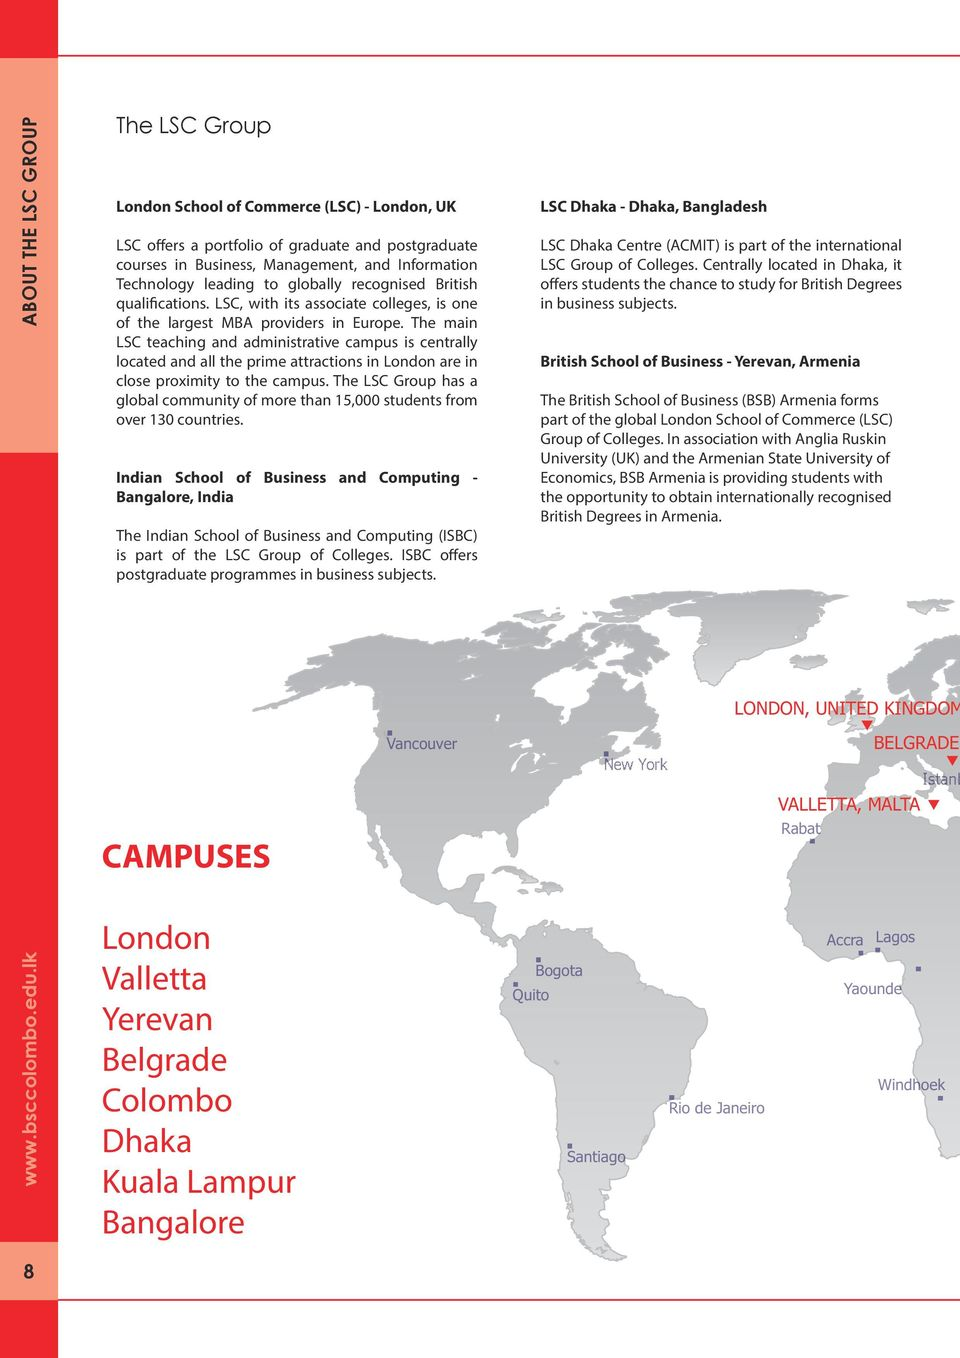 The main LSC teaching and administrative campus is centrally located and all the prime attractions in London are in close proximity to the campus.